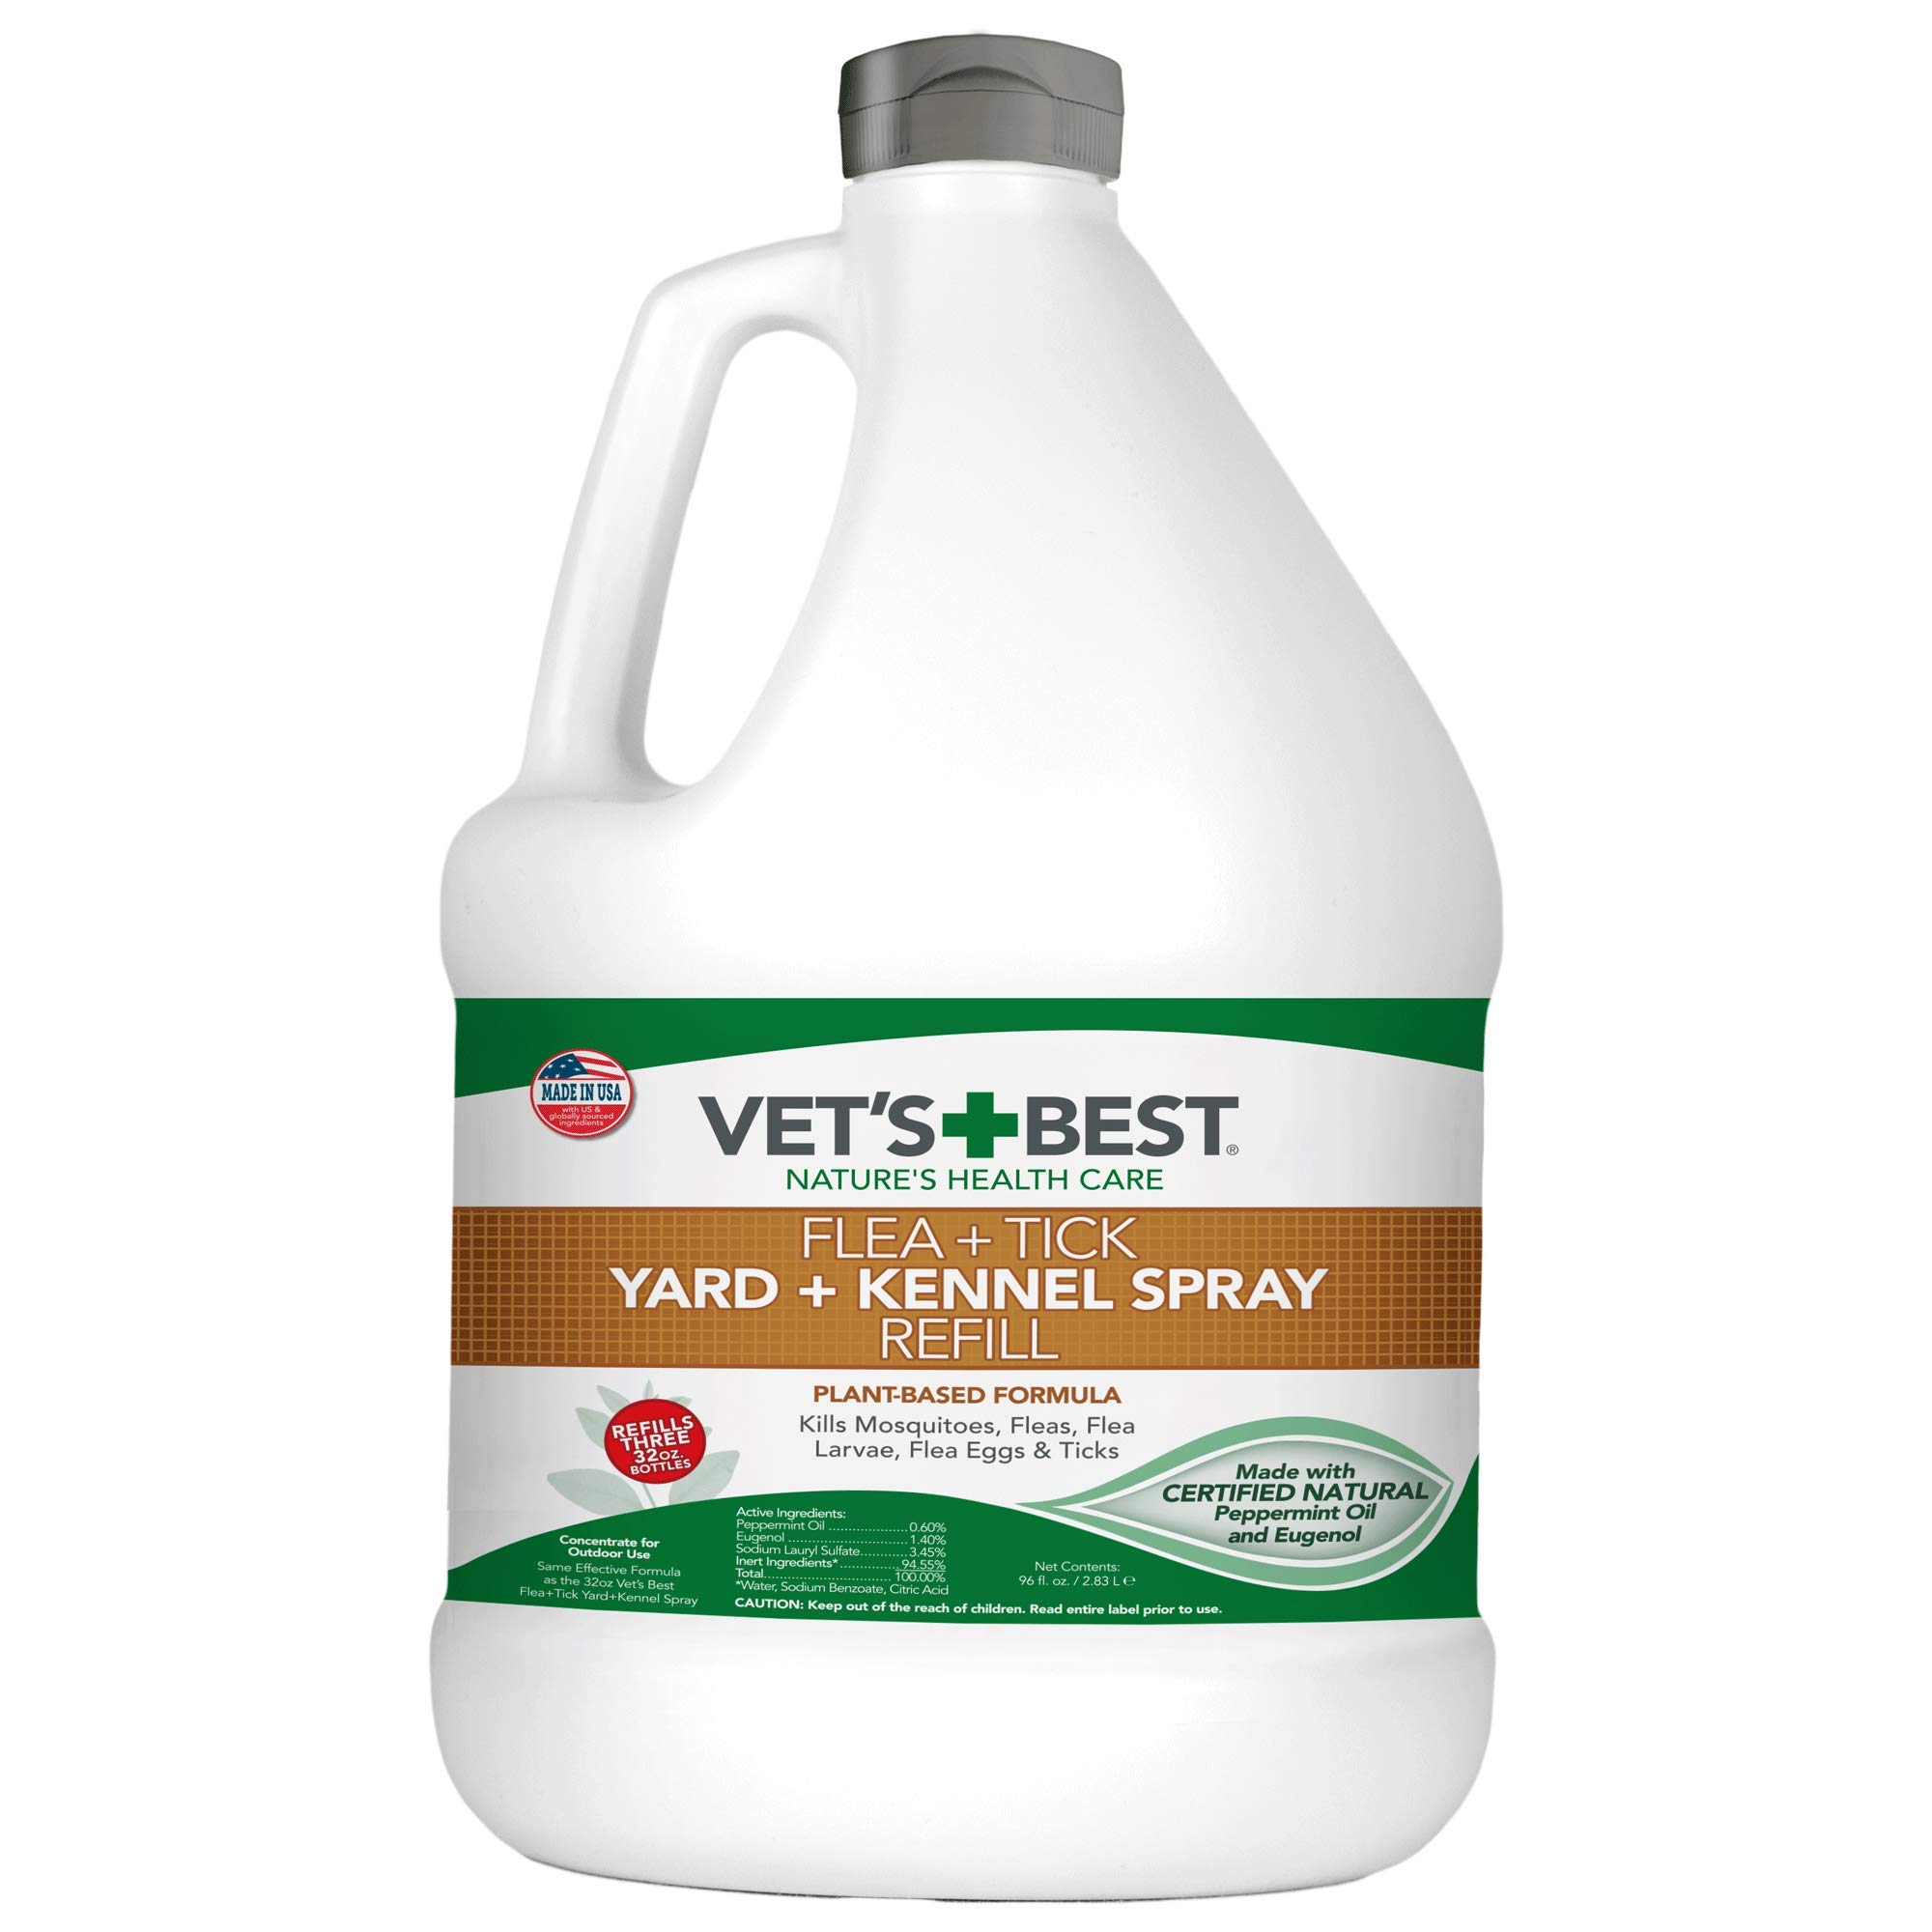 Vet's Best Flea and Tick Yard and Kennel Spray | Yard Treatment Spray Kills Mosquitoes, Fleas, and Ticks with Certified Natural Oils | Plant Safe | 96 Ounces Refill